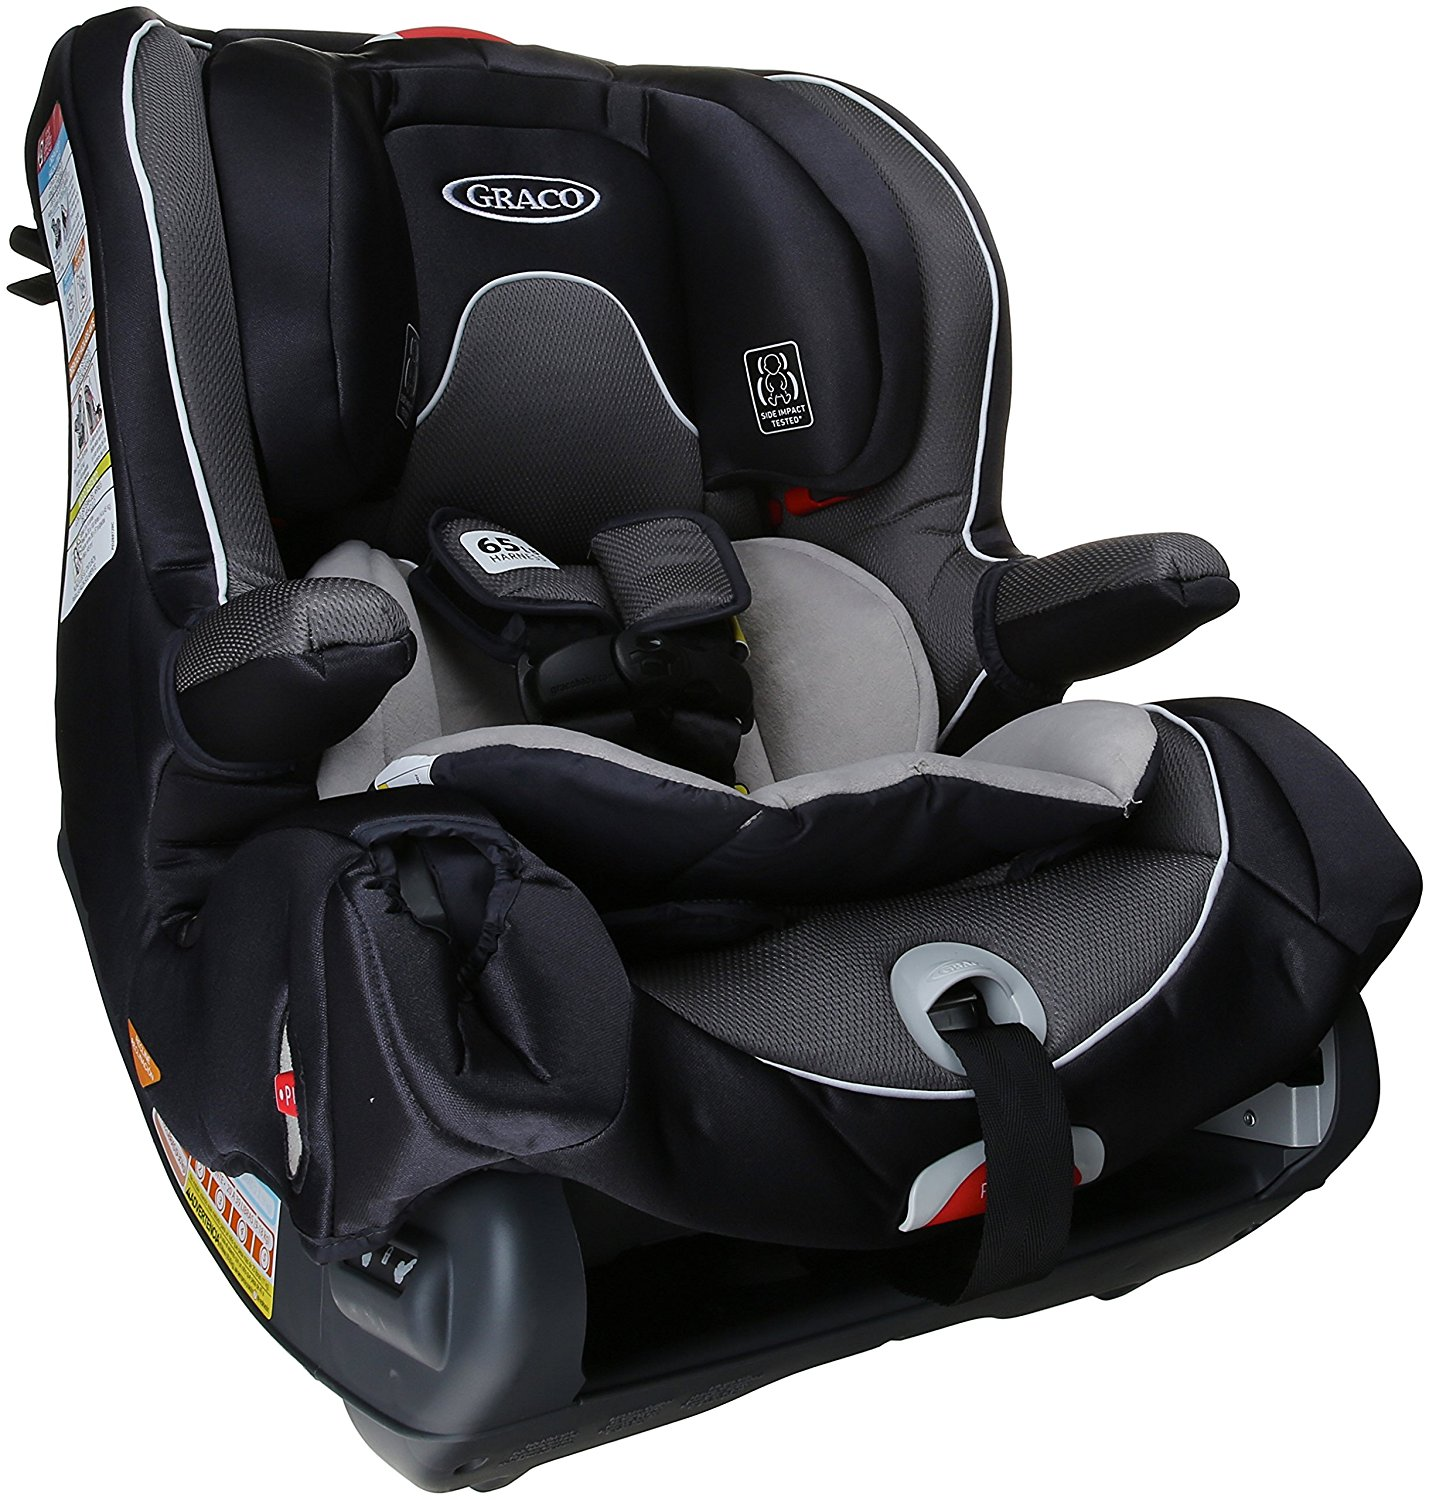 Graco Car Seat SmartSeat All In One